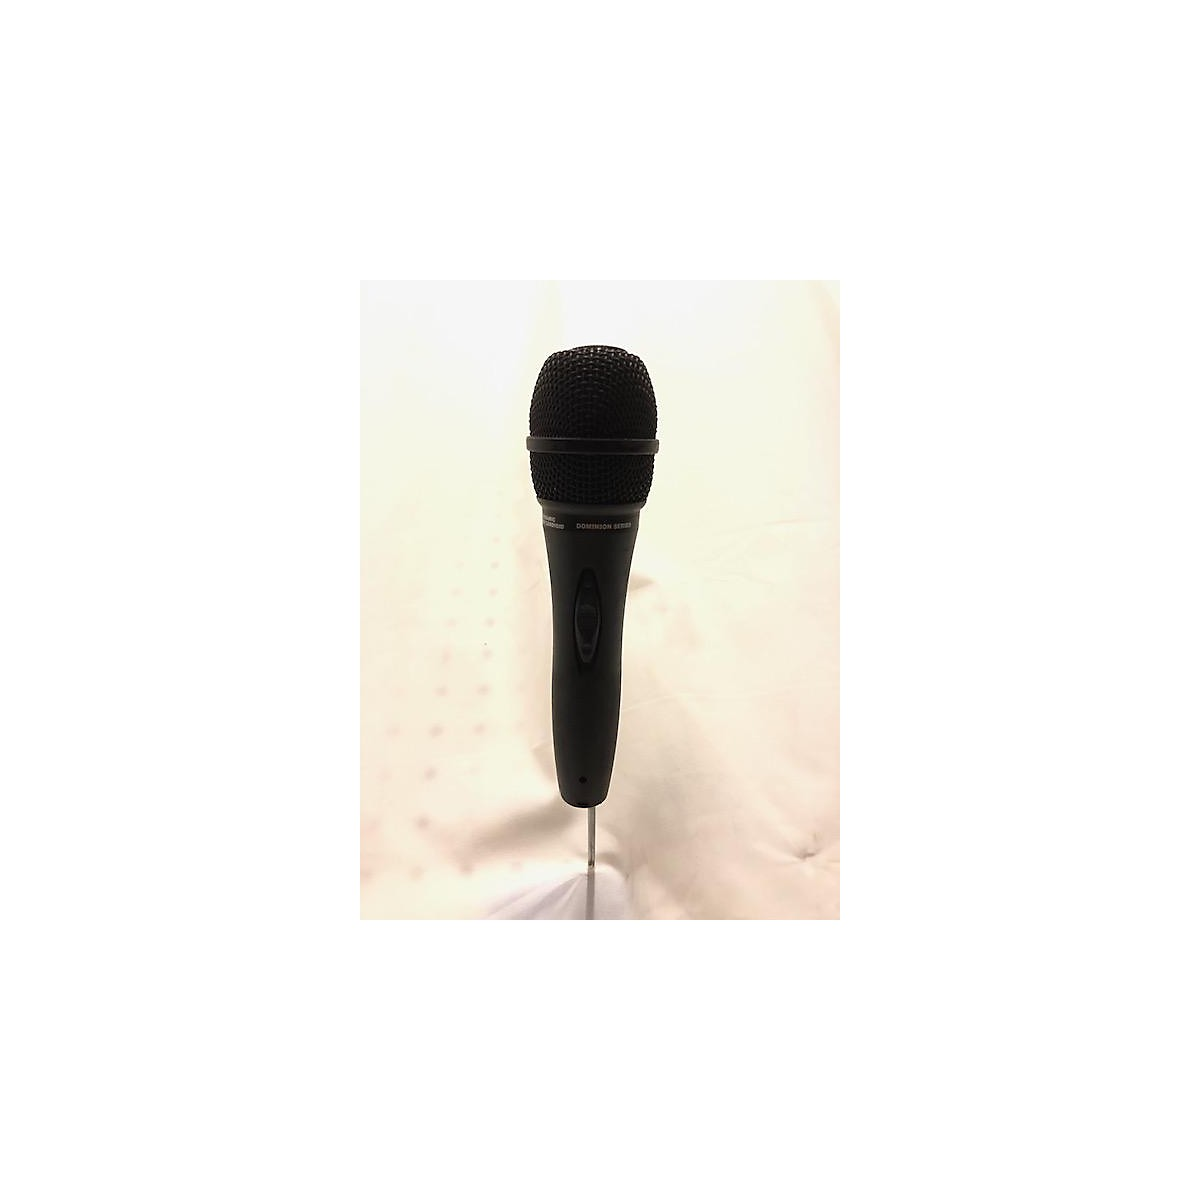 In Store Used Used EQUATION AUDIO DSV7 Dynamic Microphone